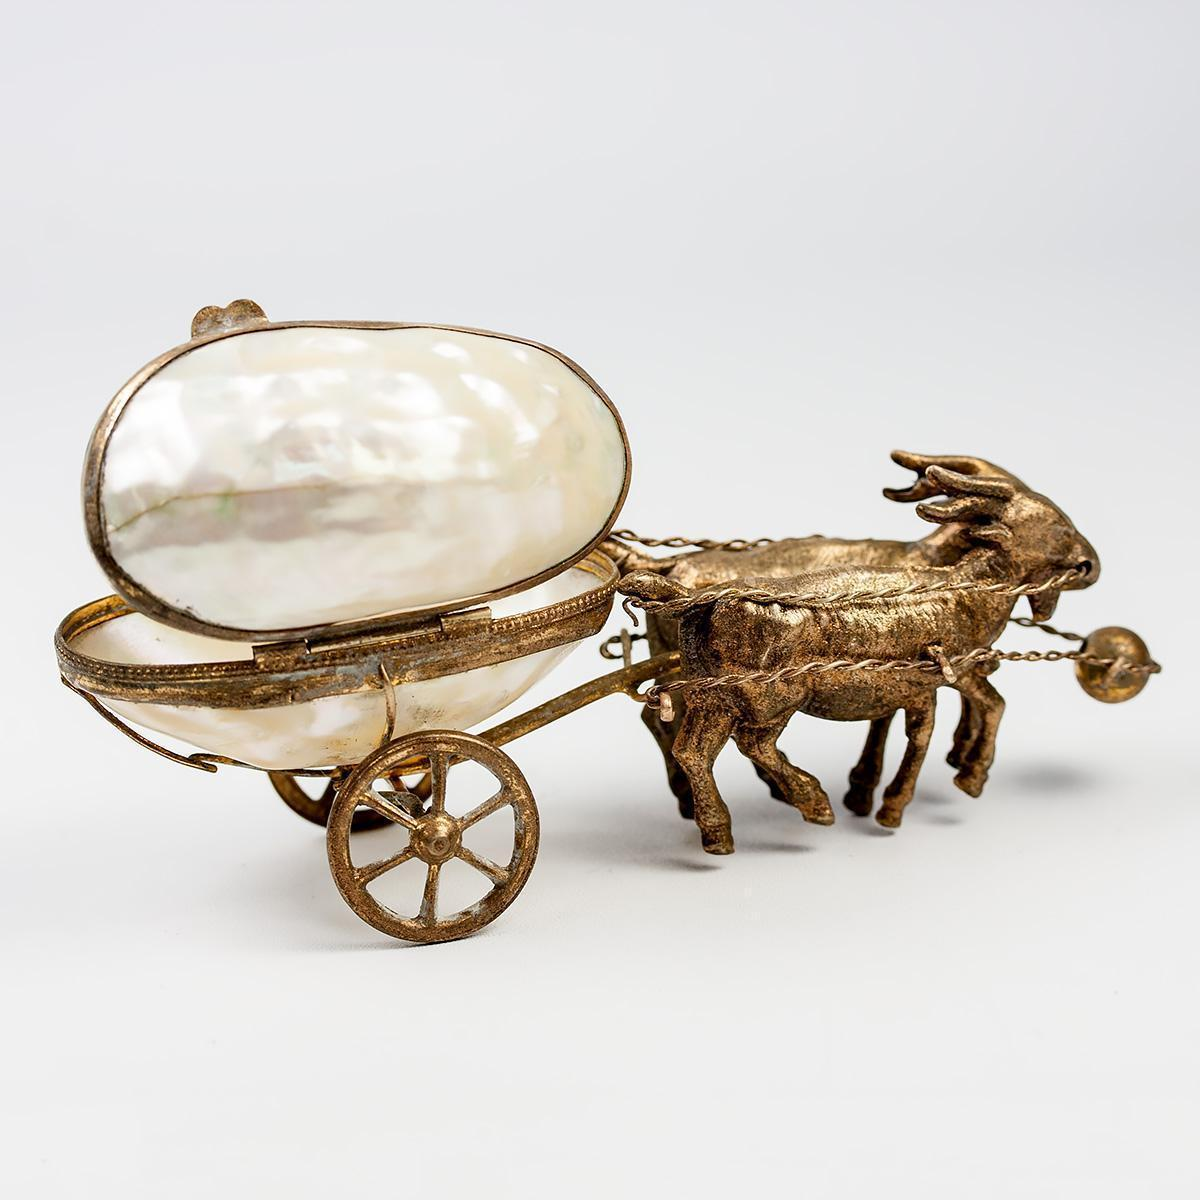 Charming Antique French Goat Cart, Mother of Pearl Egg & Ormolu Carriage